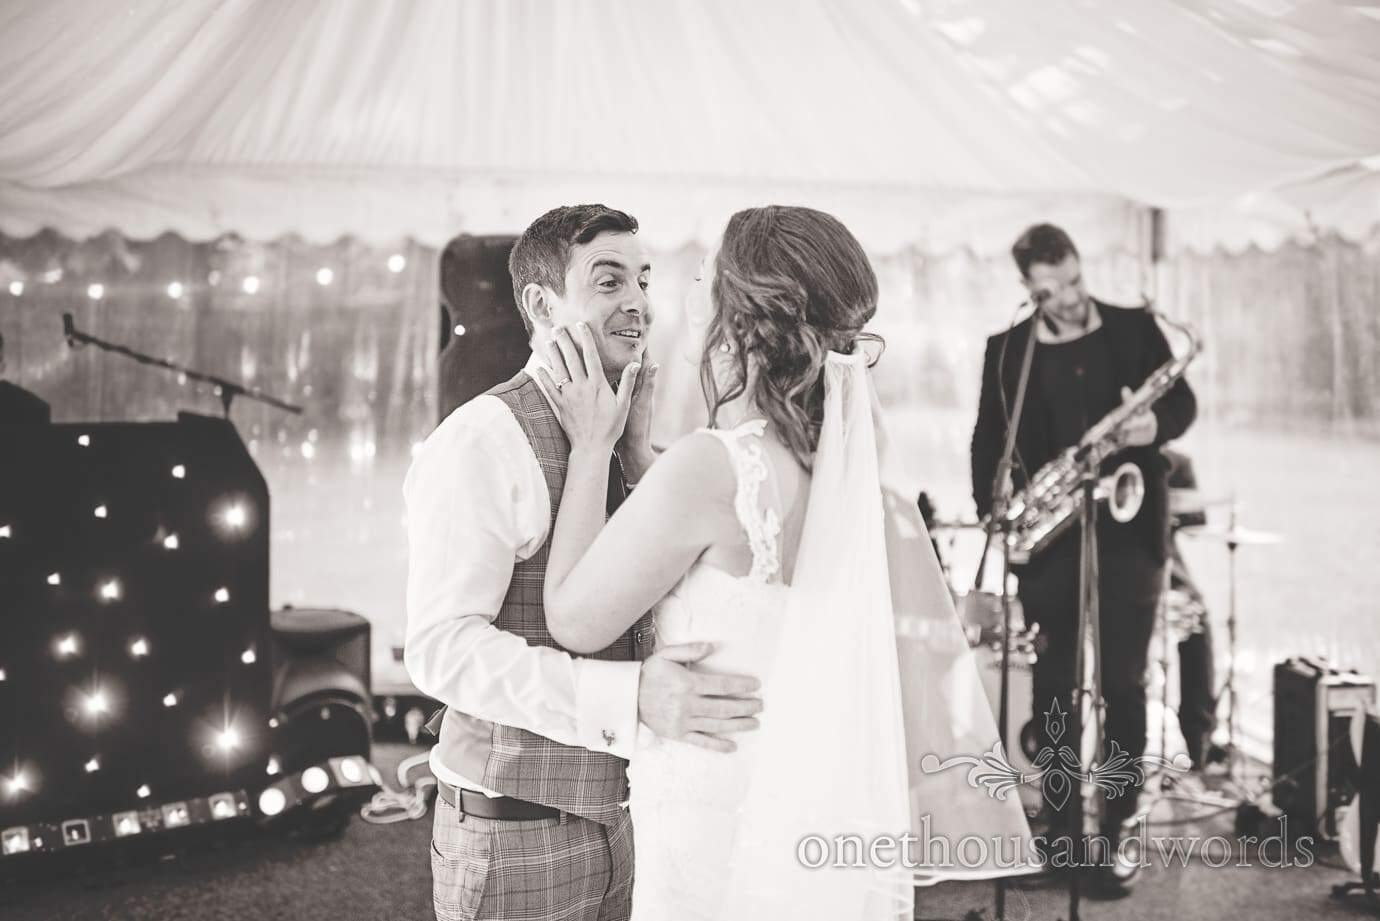 Black and white wedding photography of first dance at The Old Vicarage Wedding